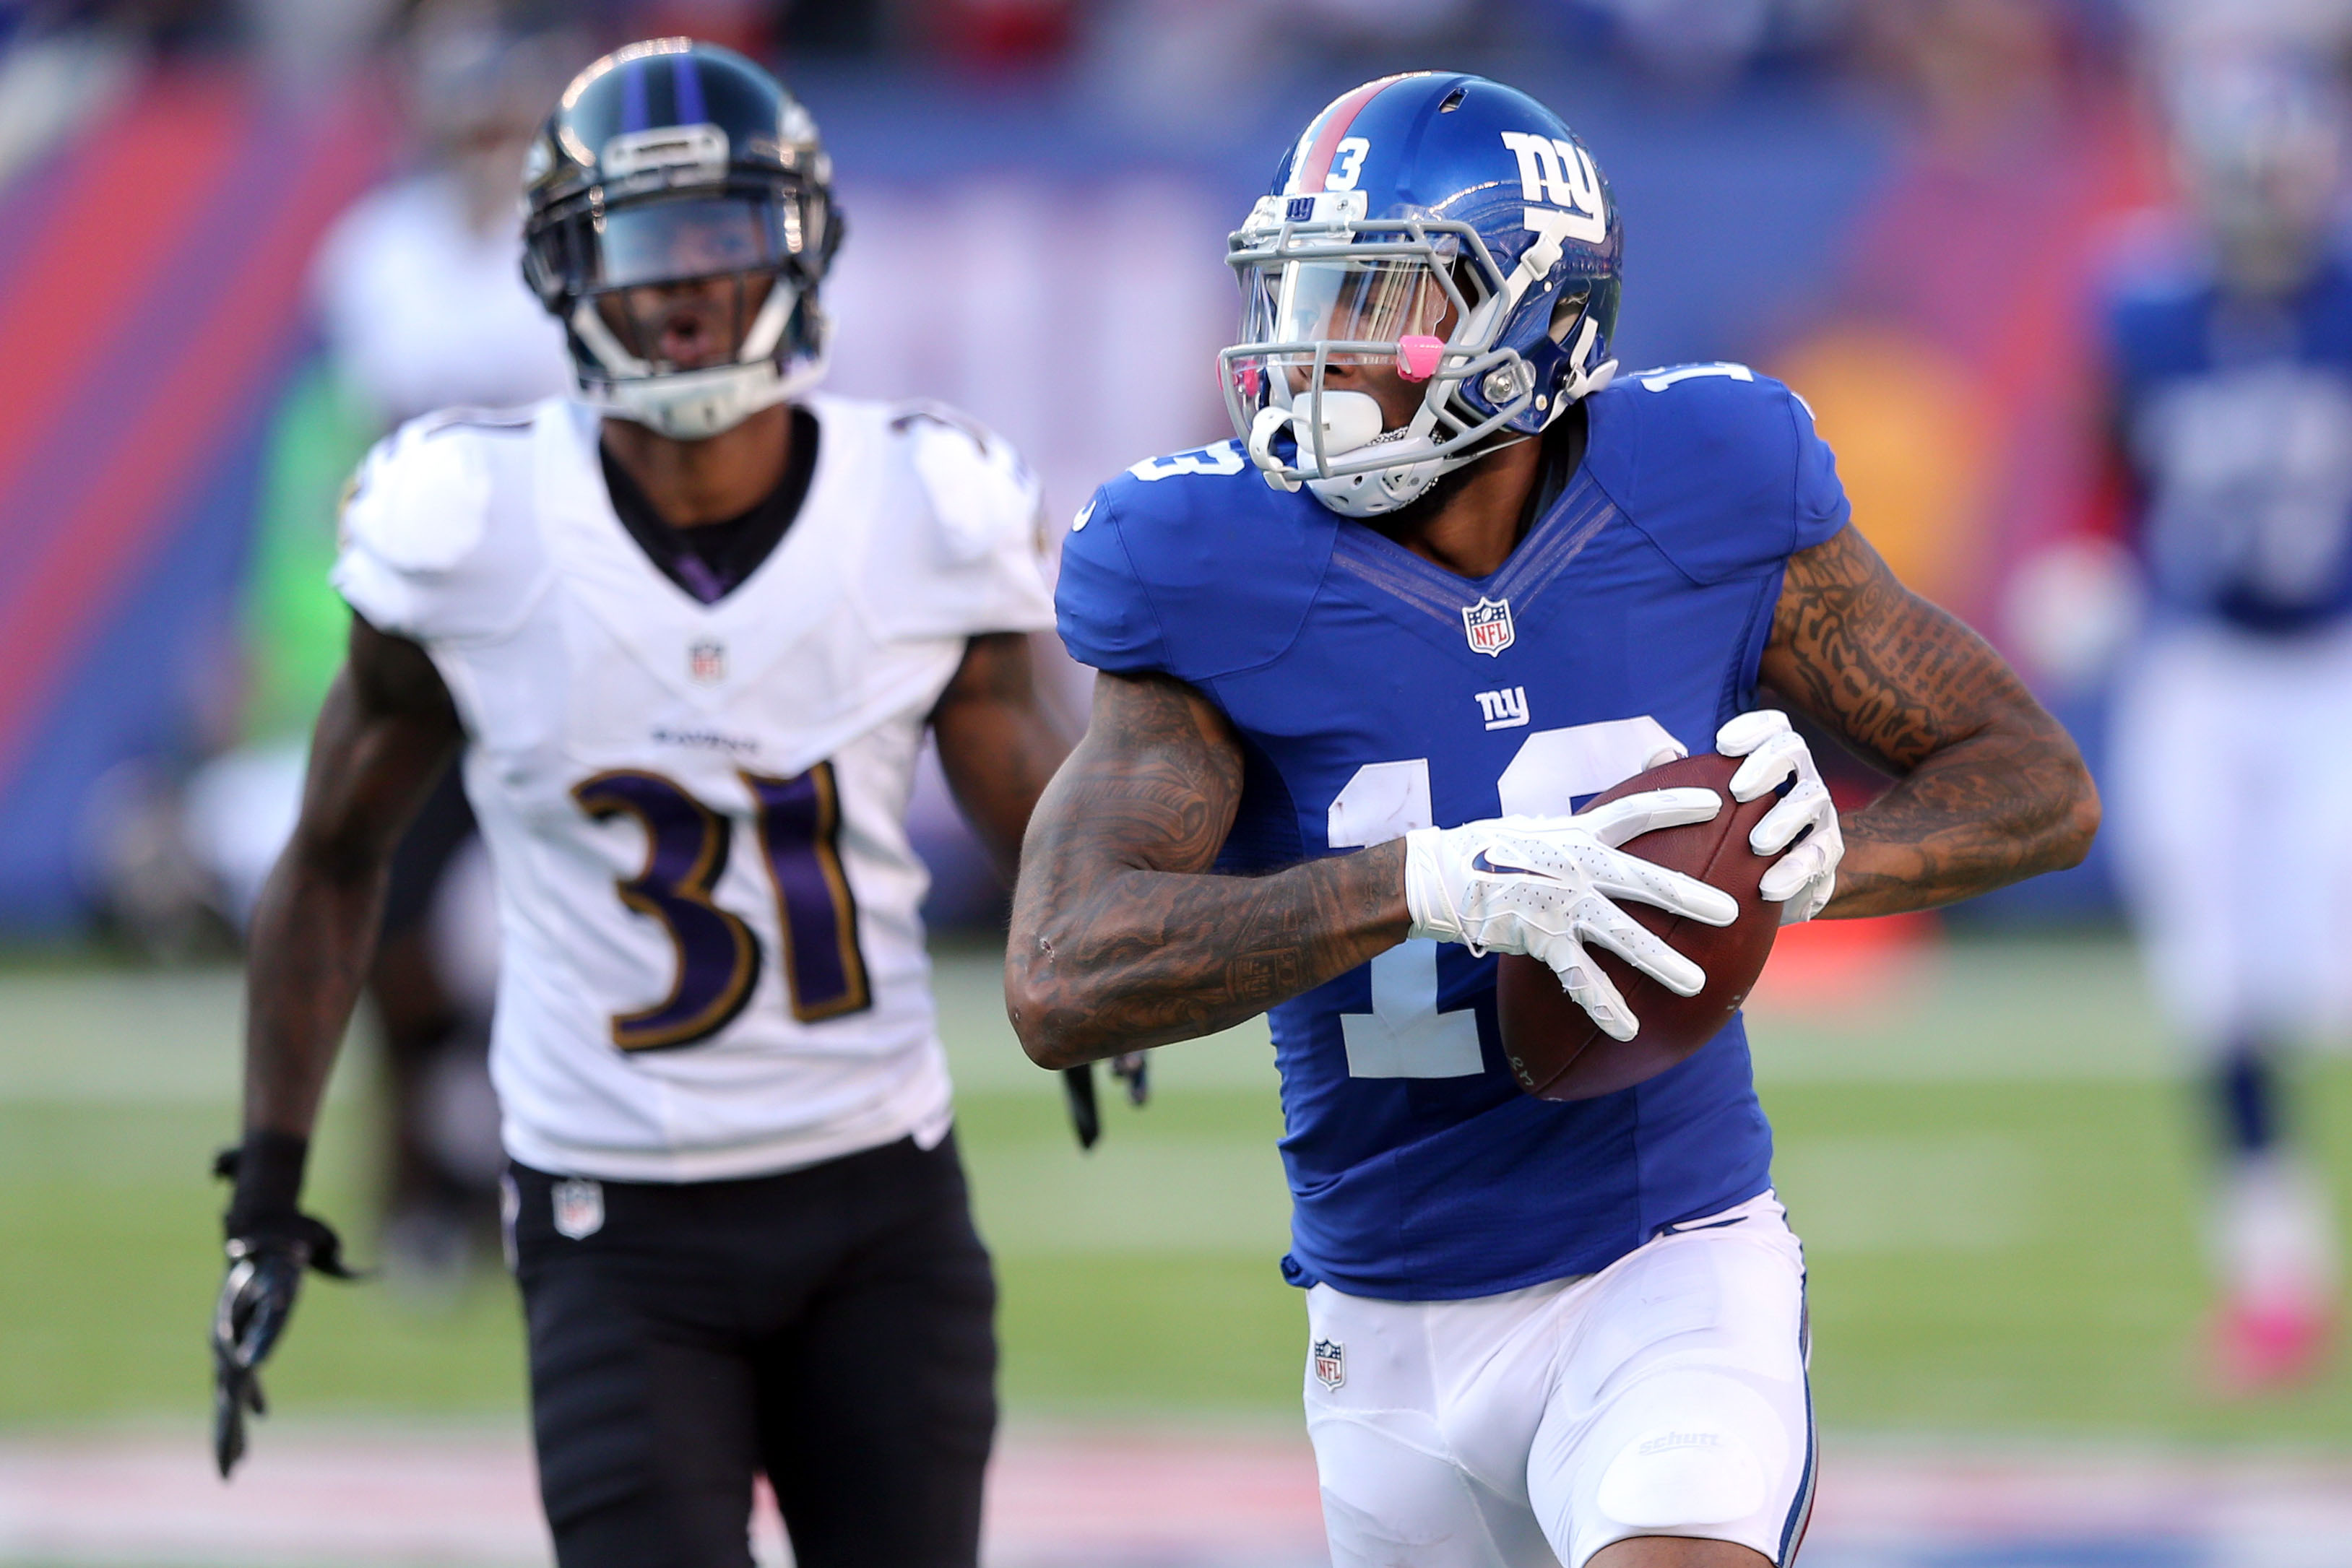 Odell Beckham en route to his game-winning touchdown on Sunday.